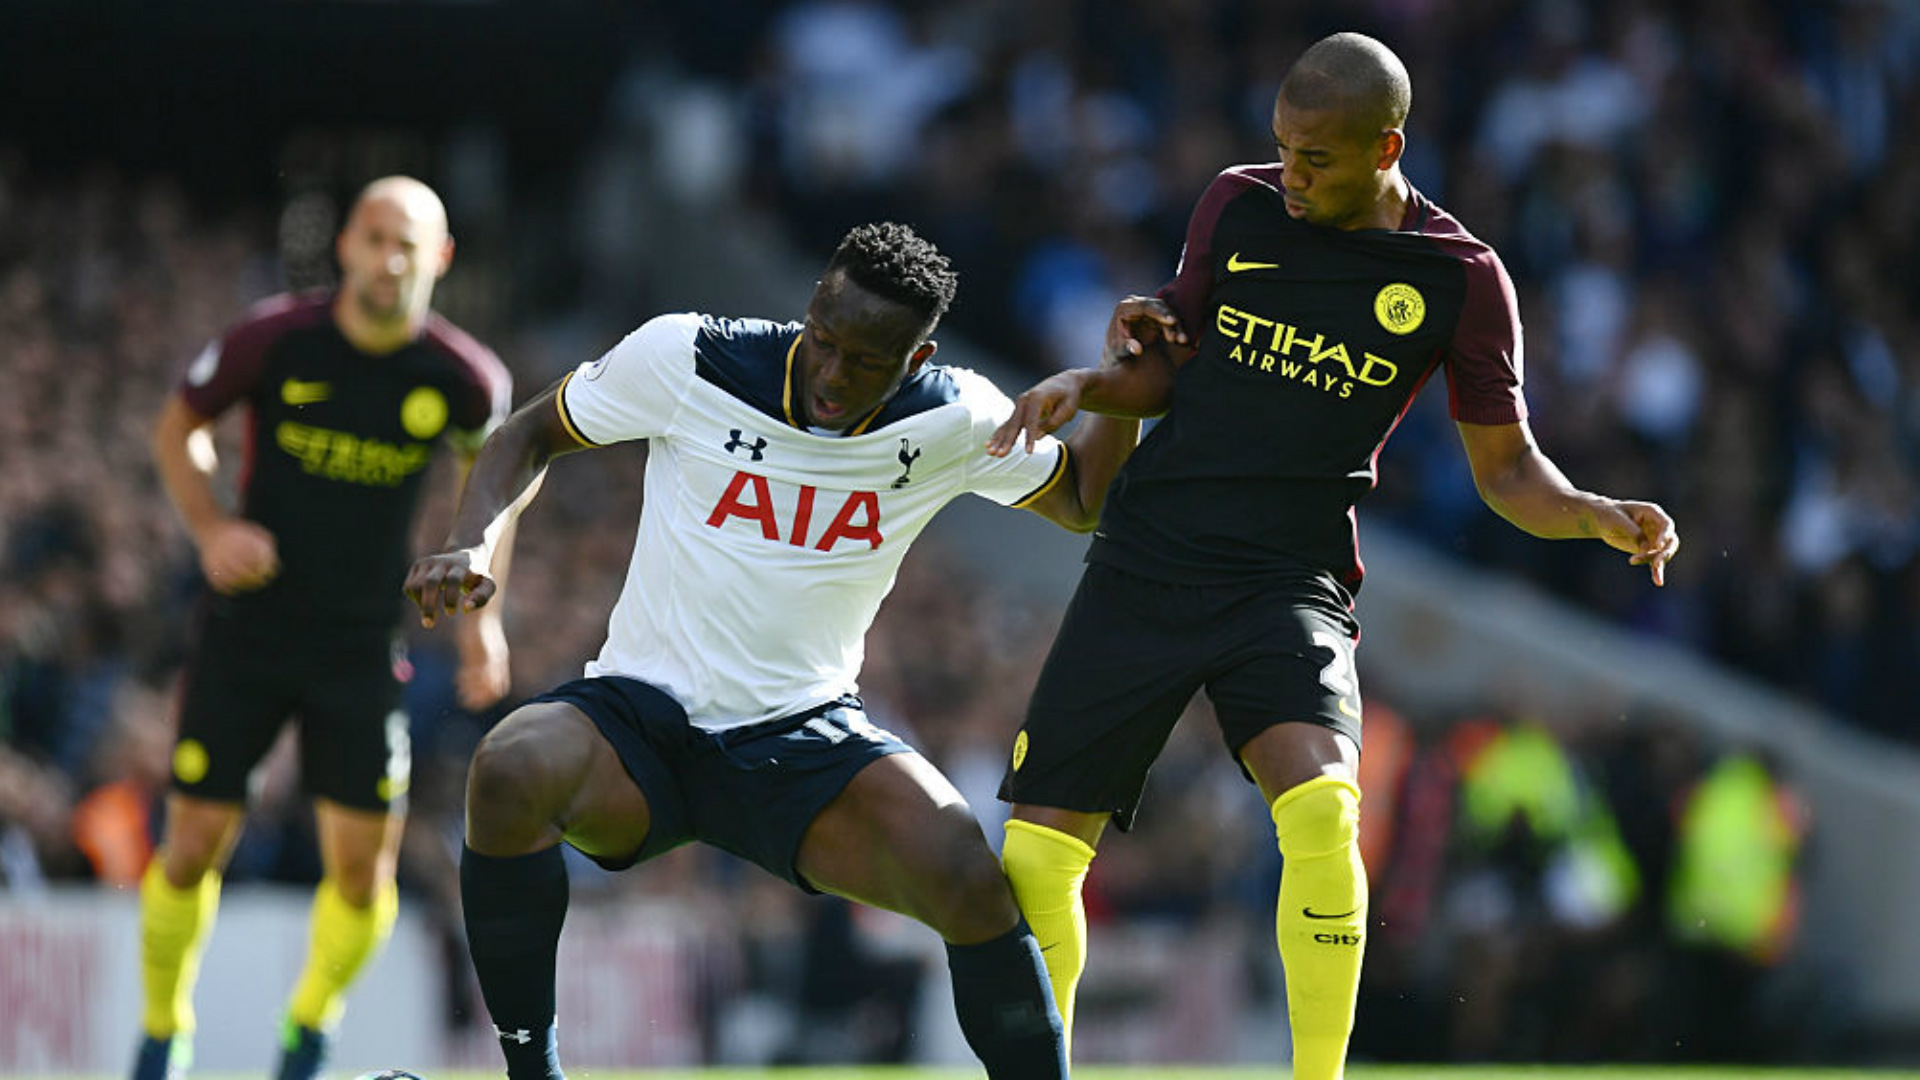 Victor Wanyama produced a man of the match display against Manchester City on Sunday